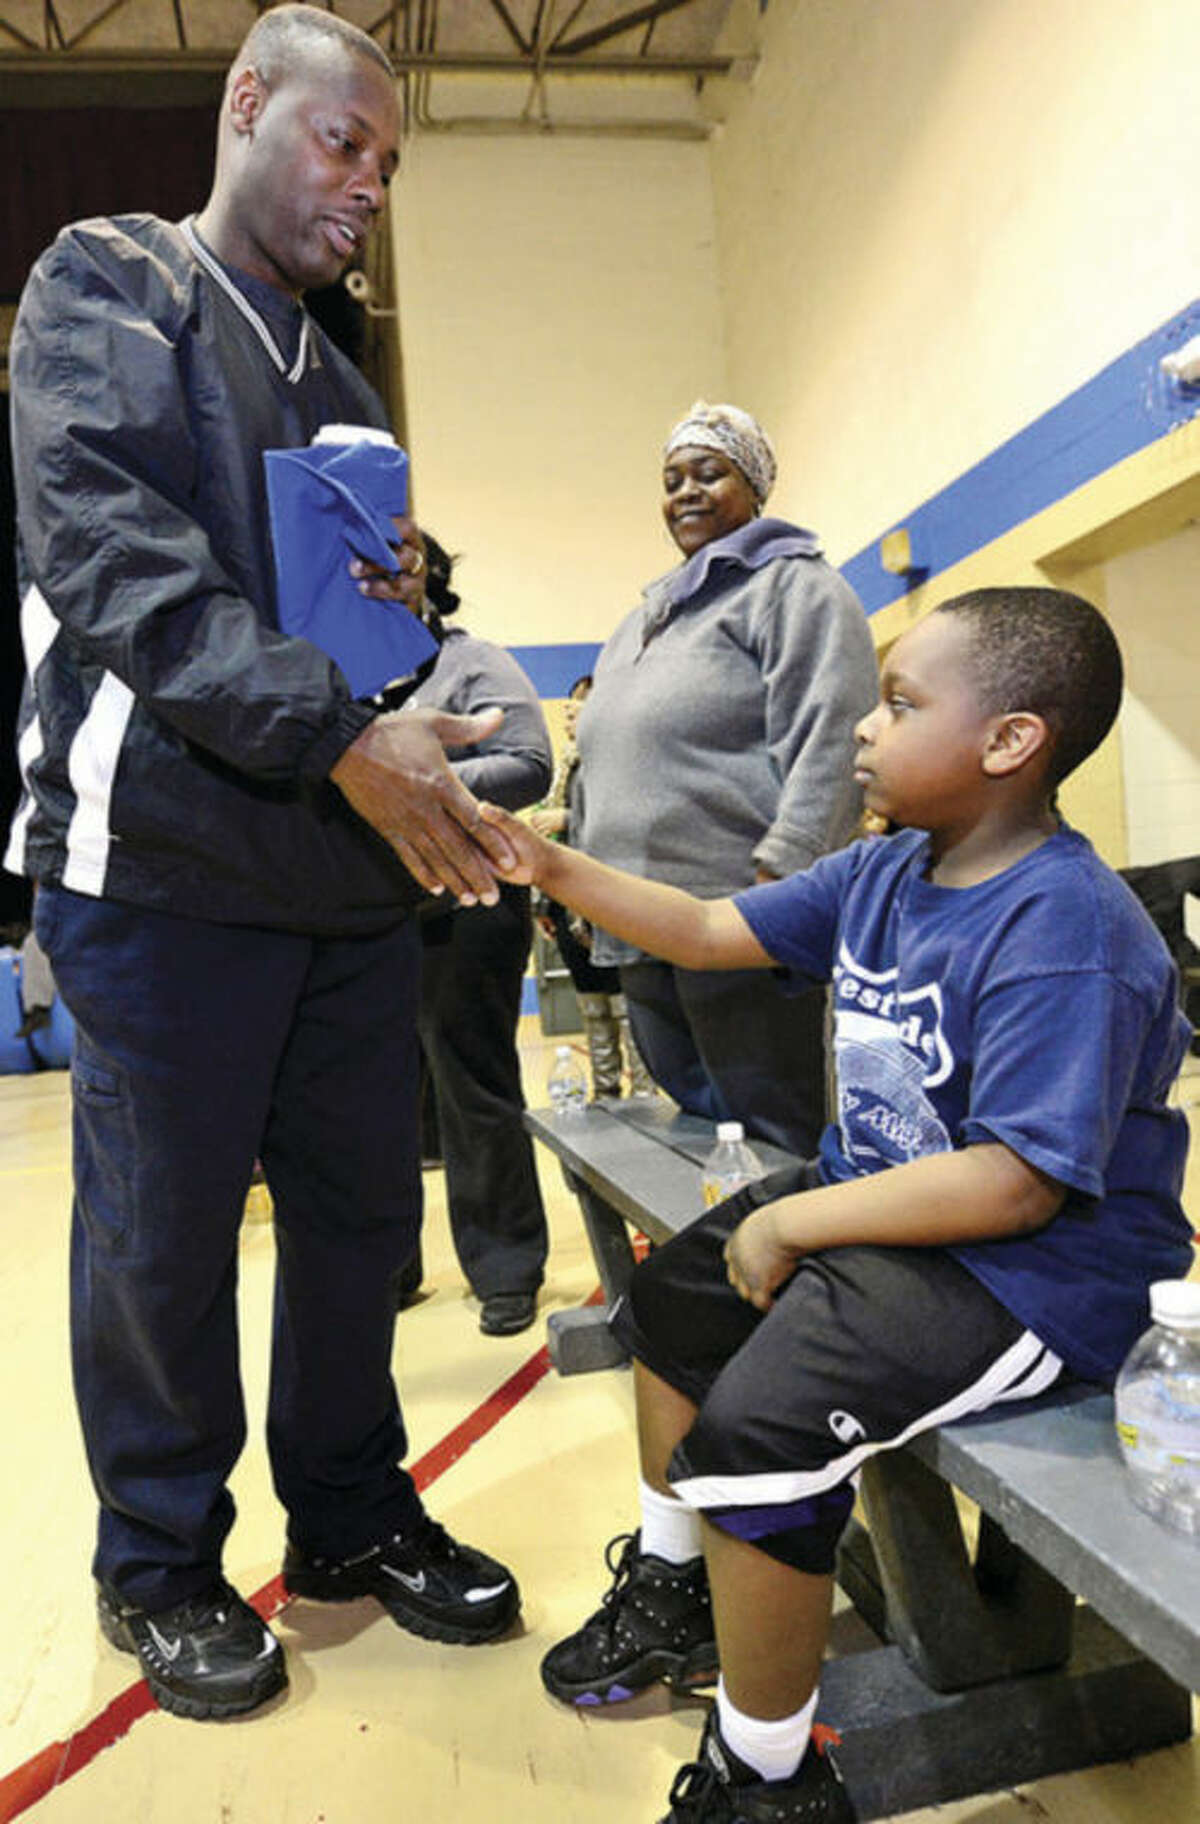 Stamford police officer Jerry Junes help Stamford kids like 5 year old Troy Baker with the city basketball league, Mighty Might Basketball. Hour photo / Erik Trautmann